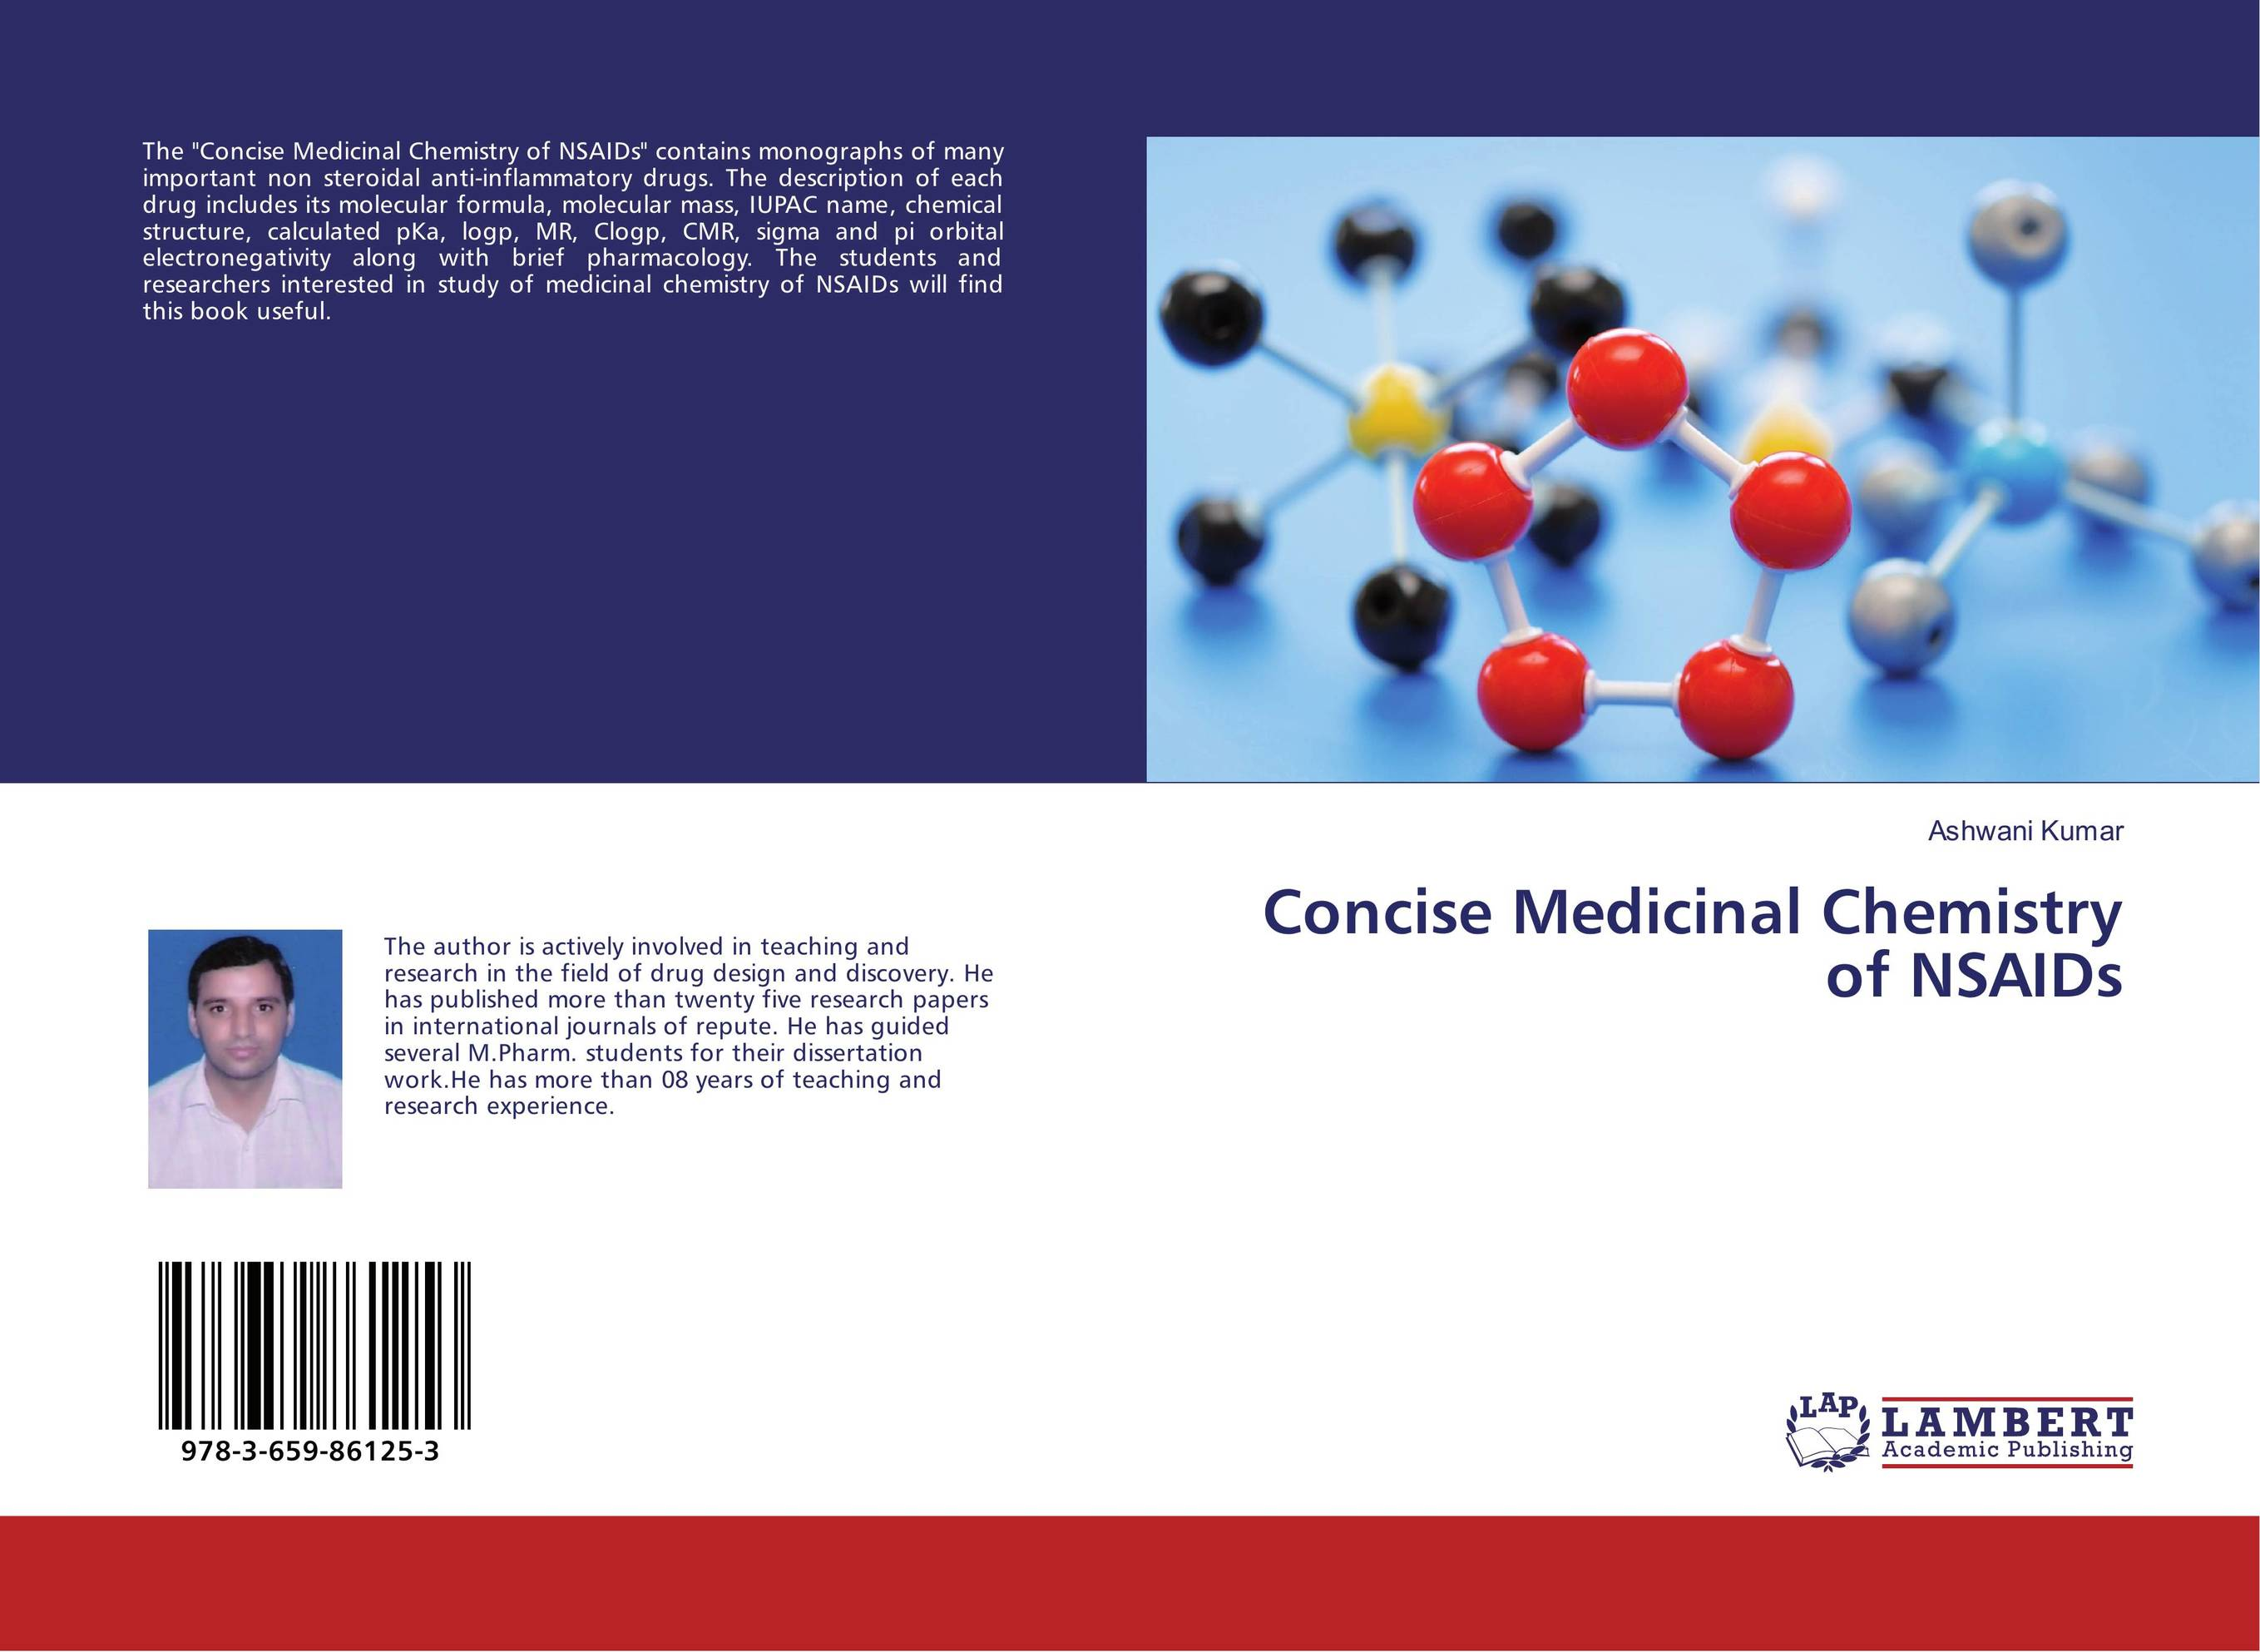 medicinal chemistry research articles The open medicinal chemistry journal is an open access online journal, which publishes research articles, reviews, letters, case reports and guest-edited single topic issues in all areas of medicinal chemistry.